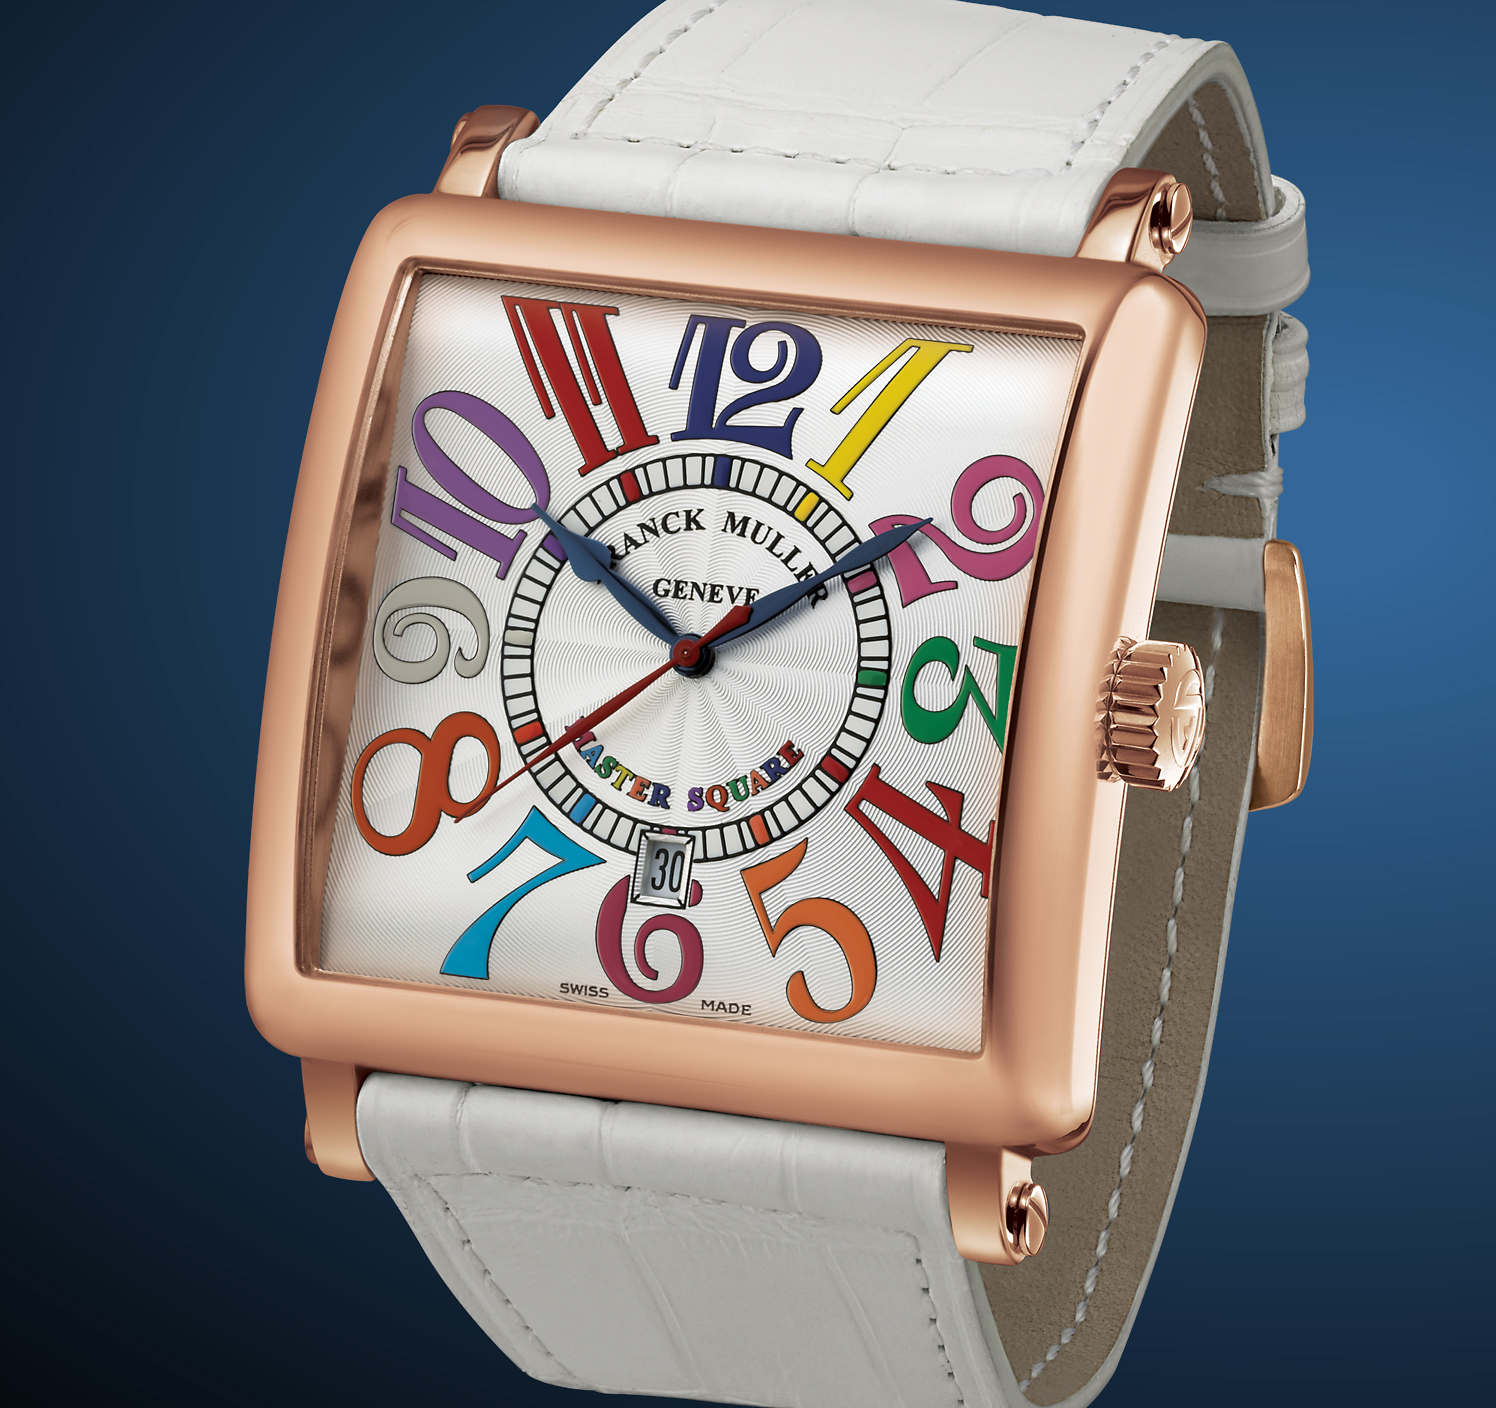 ���� Franck Muller Master Square Color Dreams